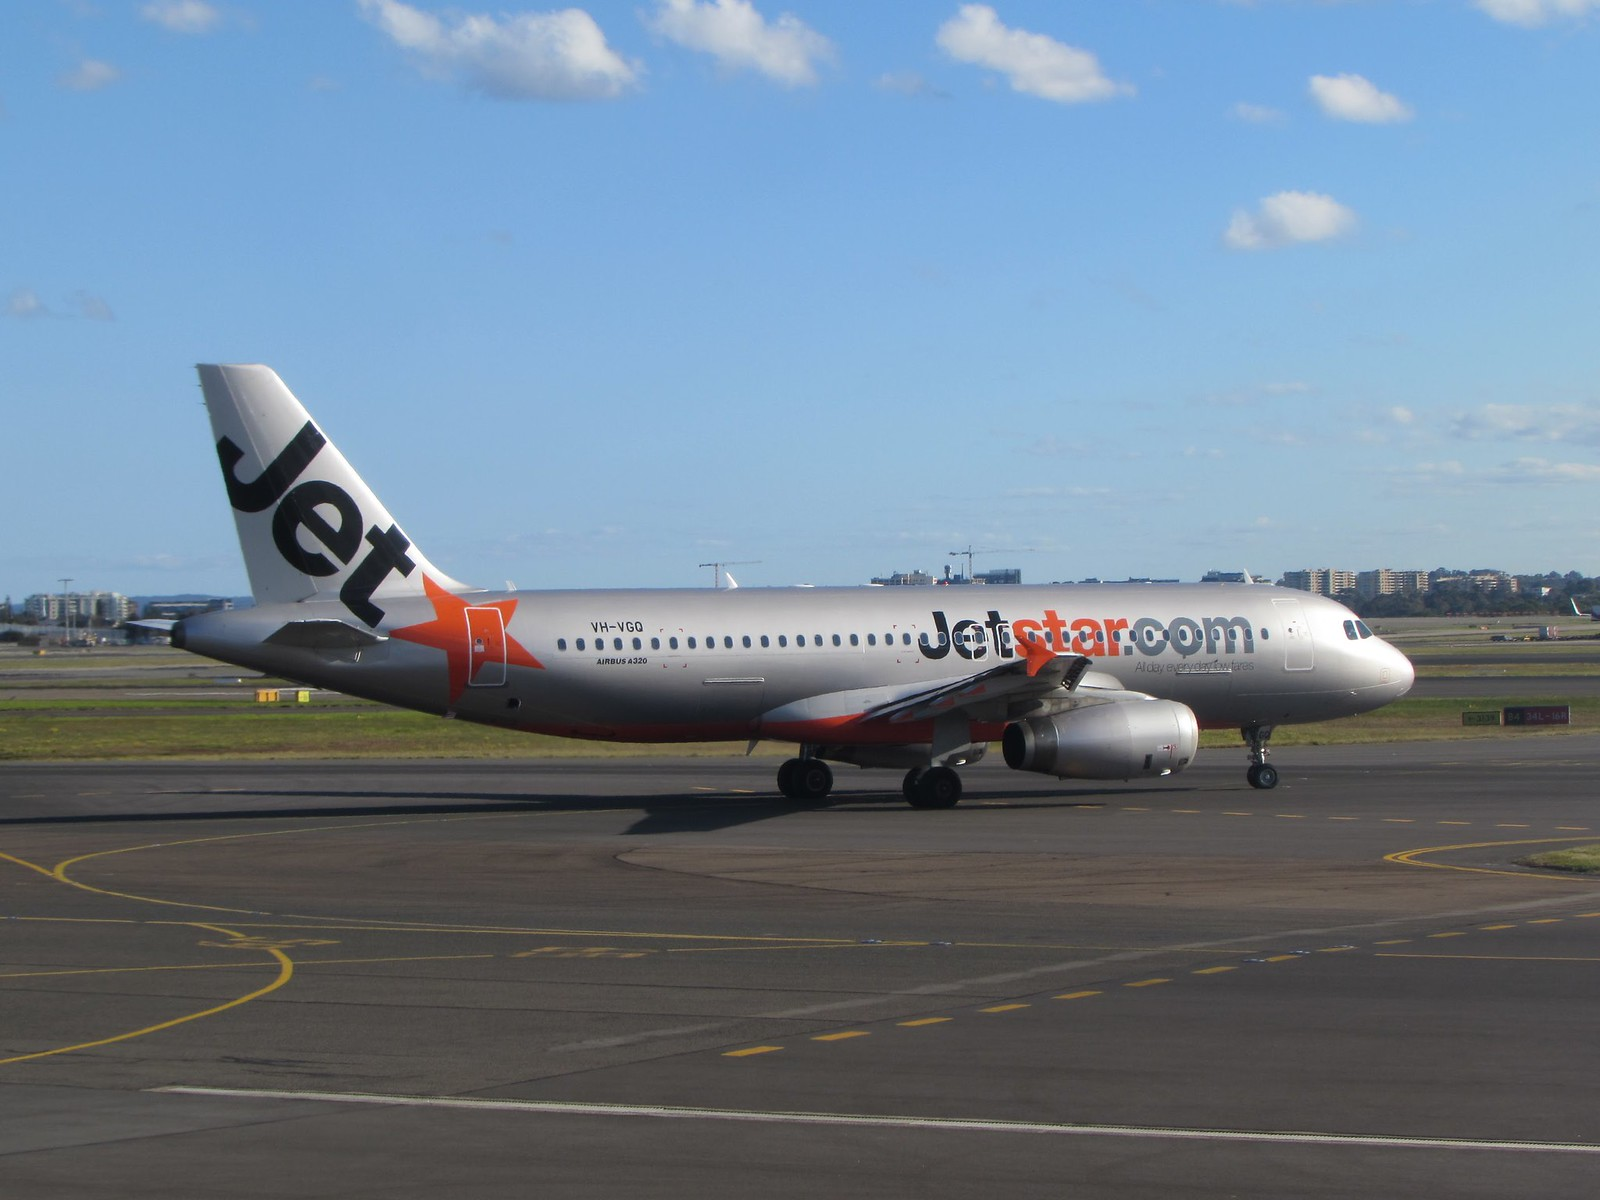 Waiting for our JetStar flight to Cairns